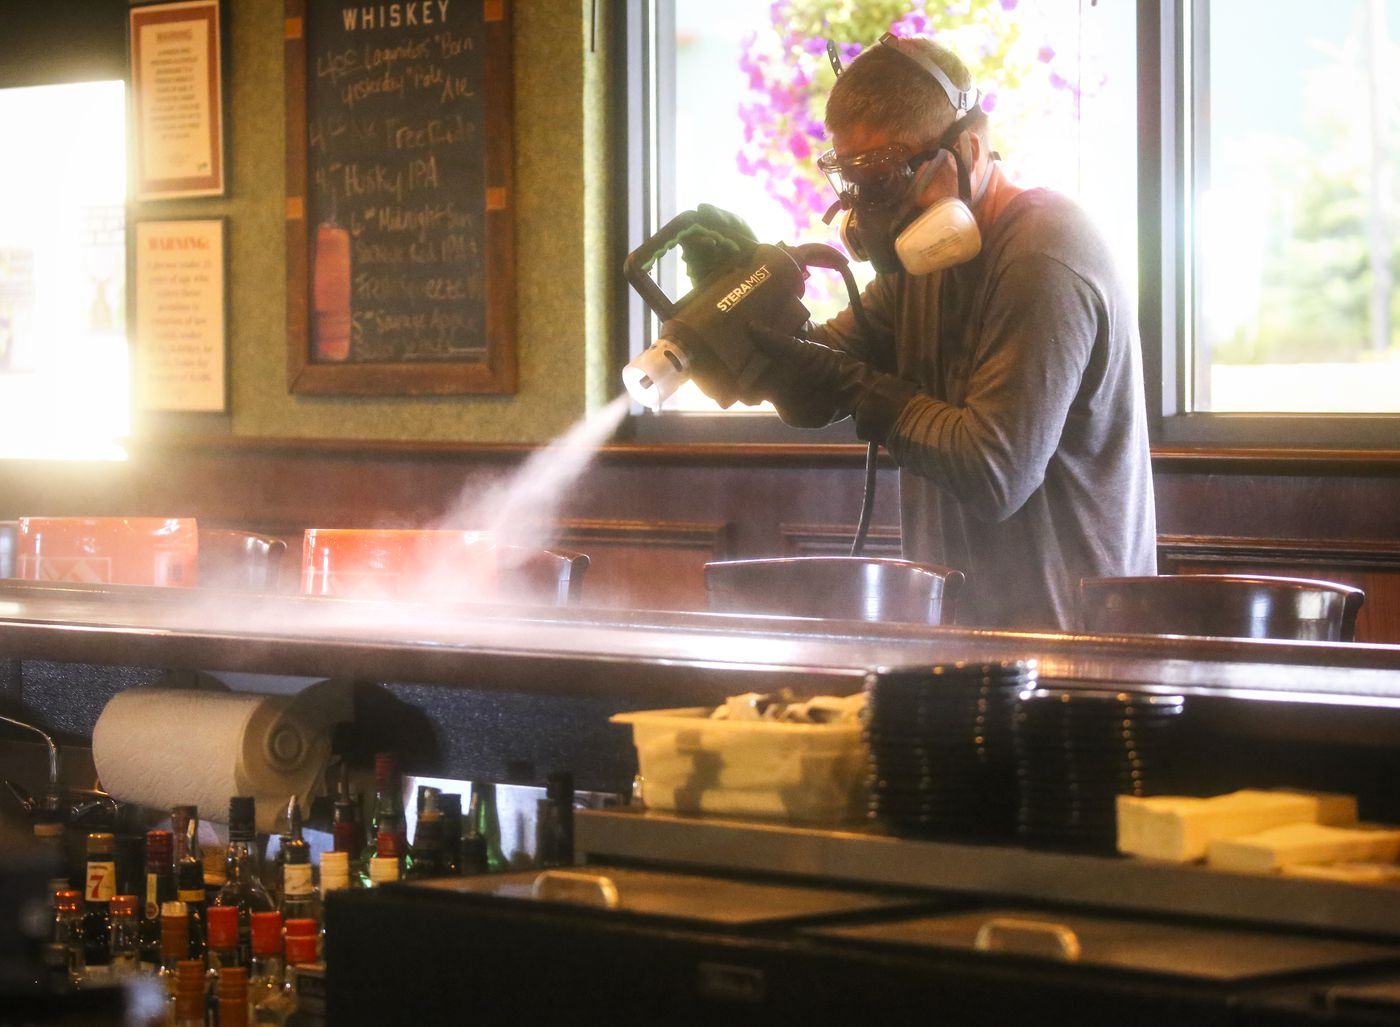 JULY 20. Brent Aafedt with Alaska Disinfectant Services uses SteraMist ionized Hydrogen Peroxide technology to thoroughly disinfect the interior of 907 Alehouse & Grill. The extra cleaning measures were taken after an employee at the alehouse tested positive for COVID-19. (Emily Mesner / ADN)